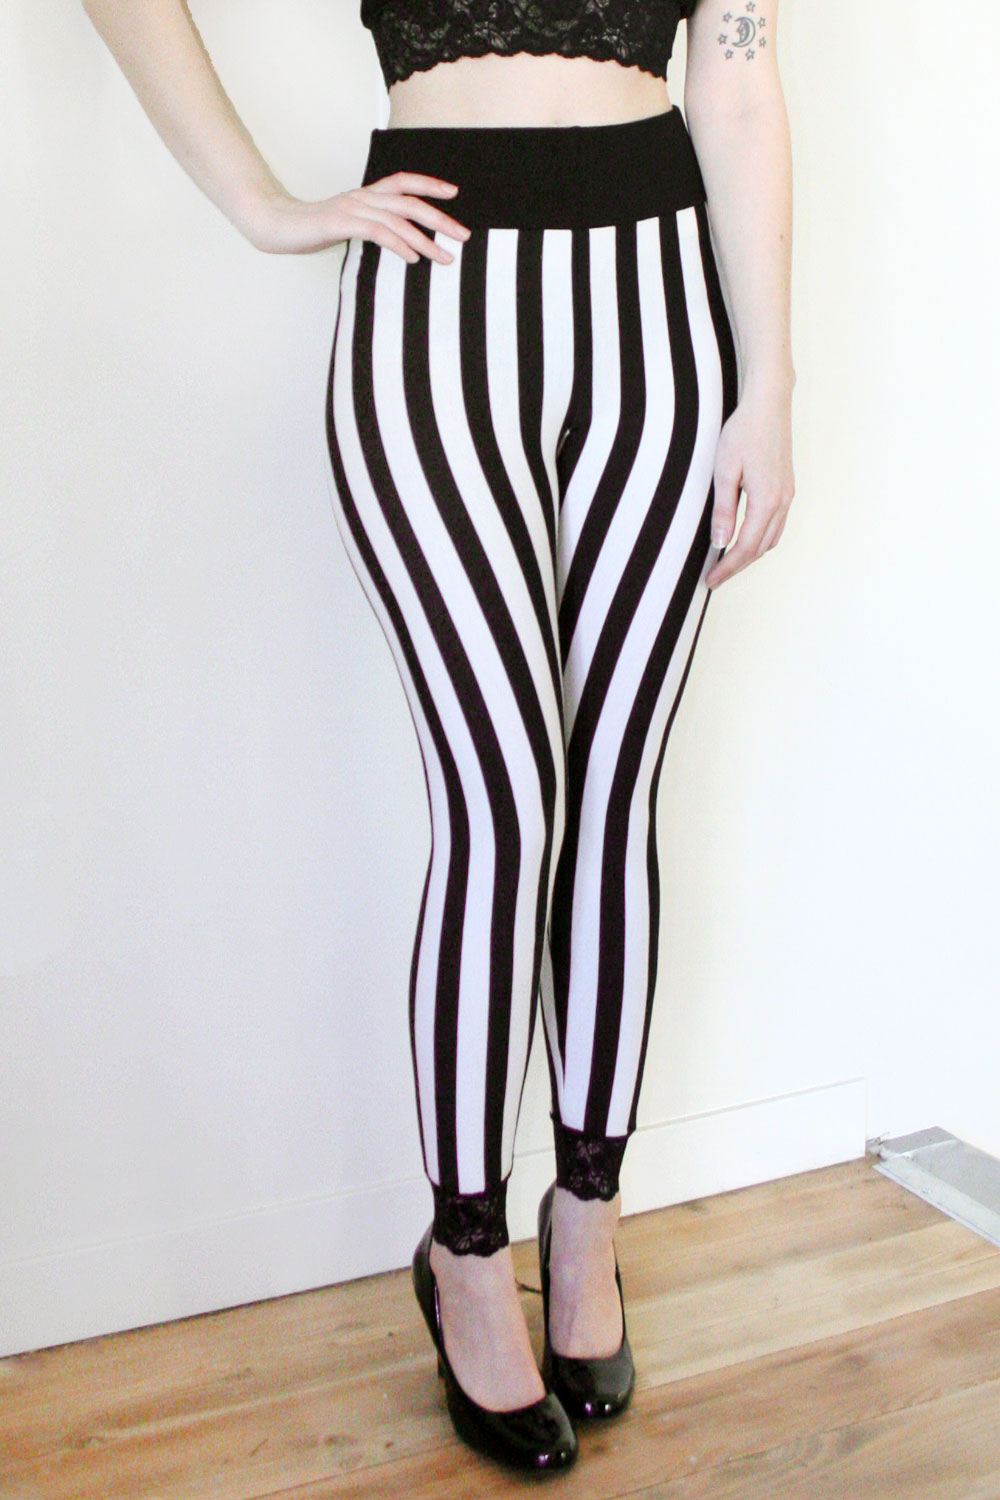 Striped Leggings [4 recolors]